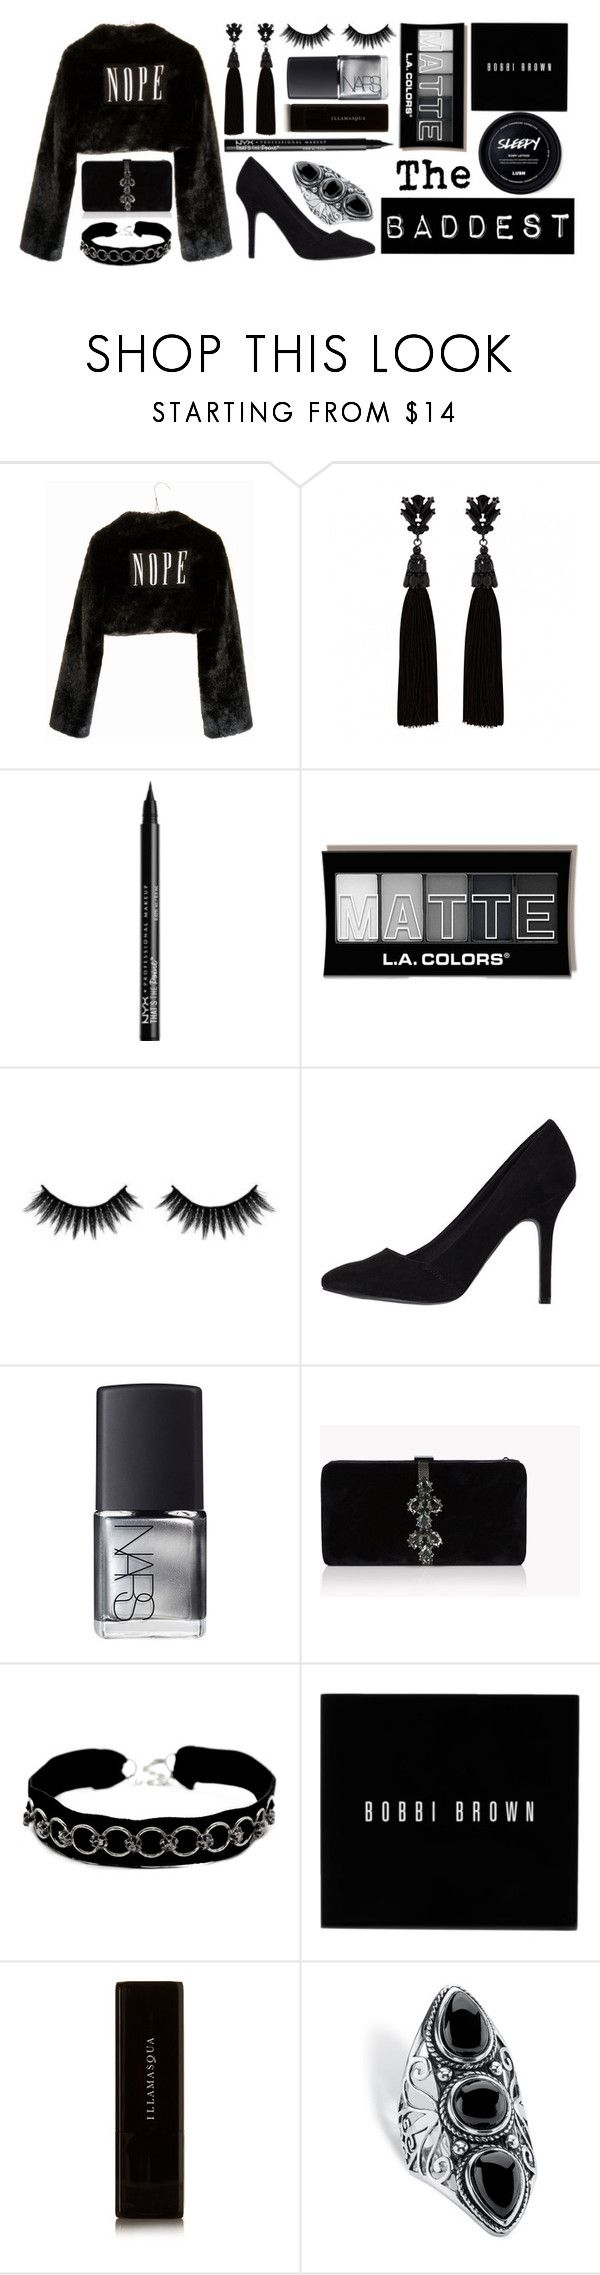 """The Baddest"" by infinitysunset ❤ liked on Polyvore featuring Wet Seal, Ziggy, NYX, Morphe, NARS Cosmetics, Dsquared2, VSA, Bobbi Brown Cosmetics, Illamasqua and Palm Beach Jewelry"